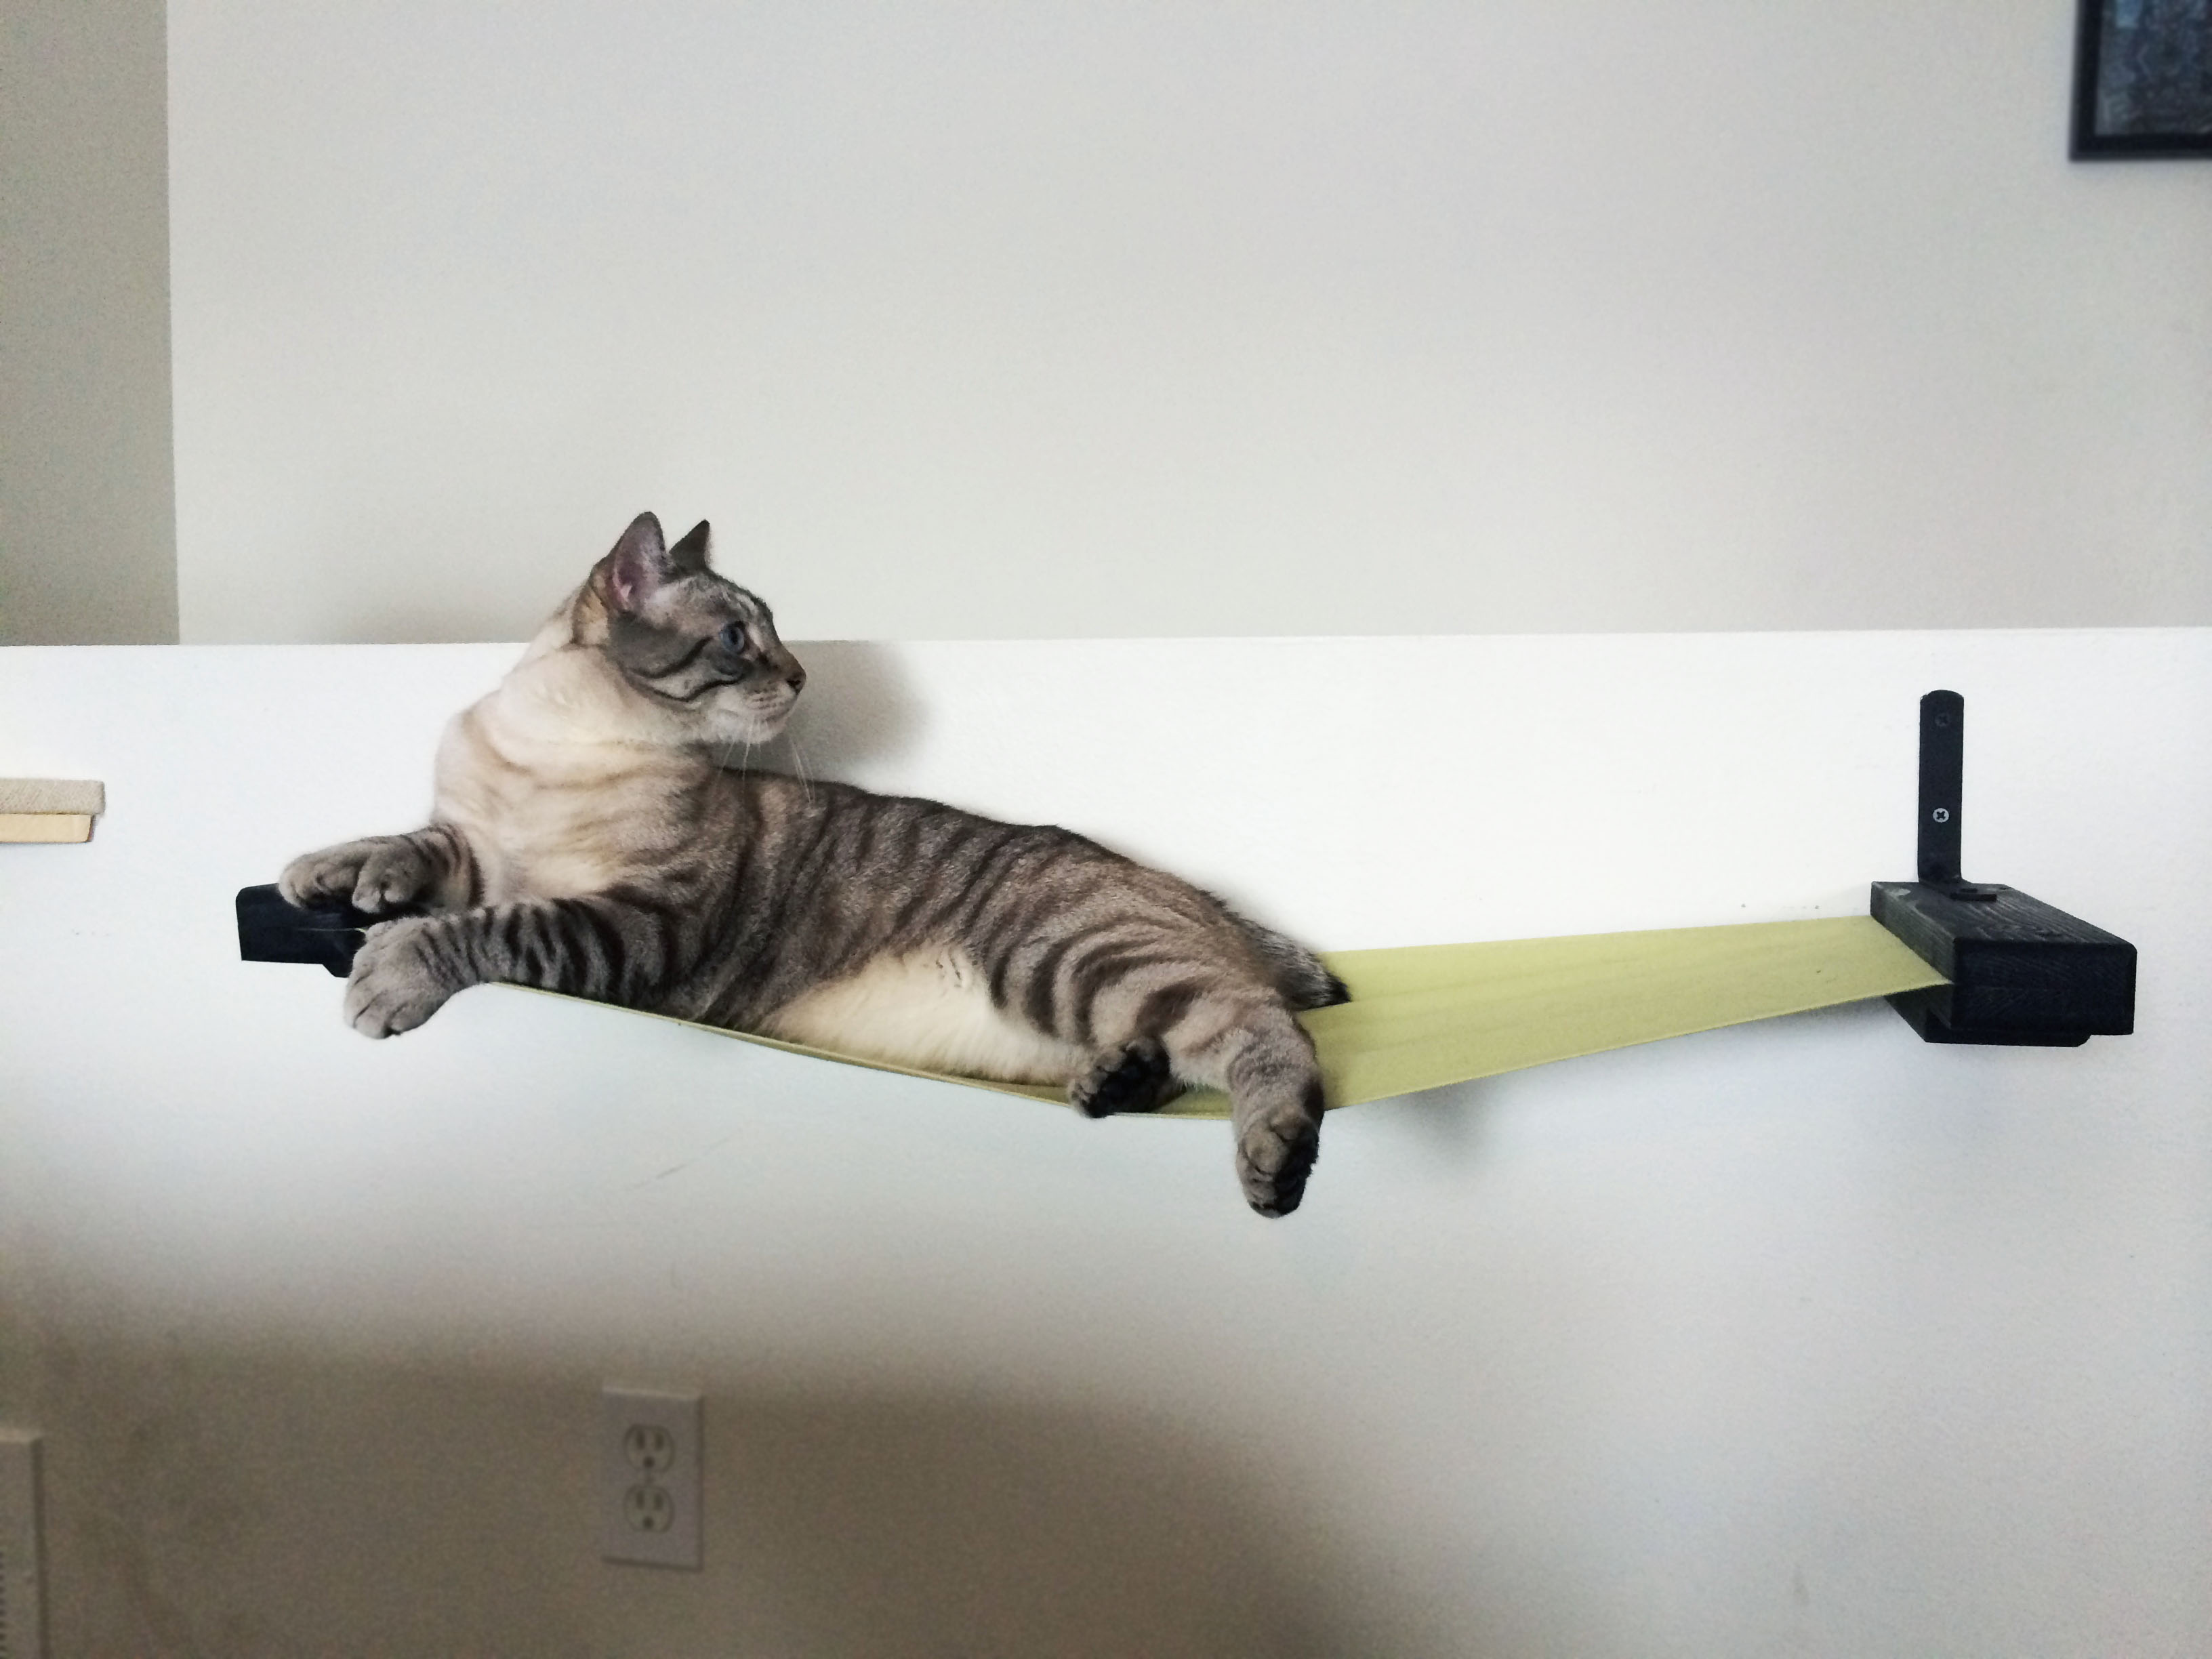 How to keep cats off furniture with vinegar